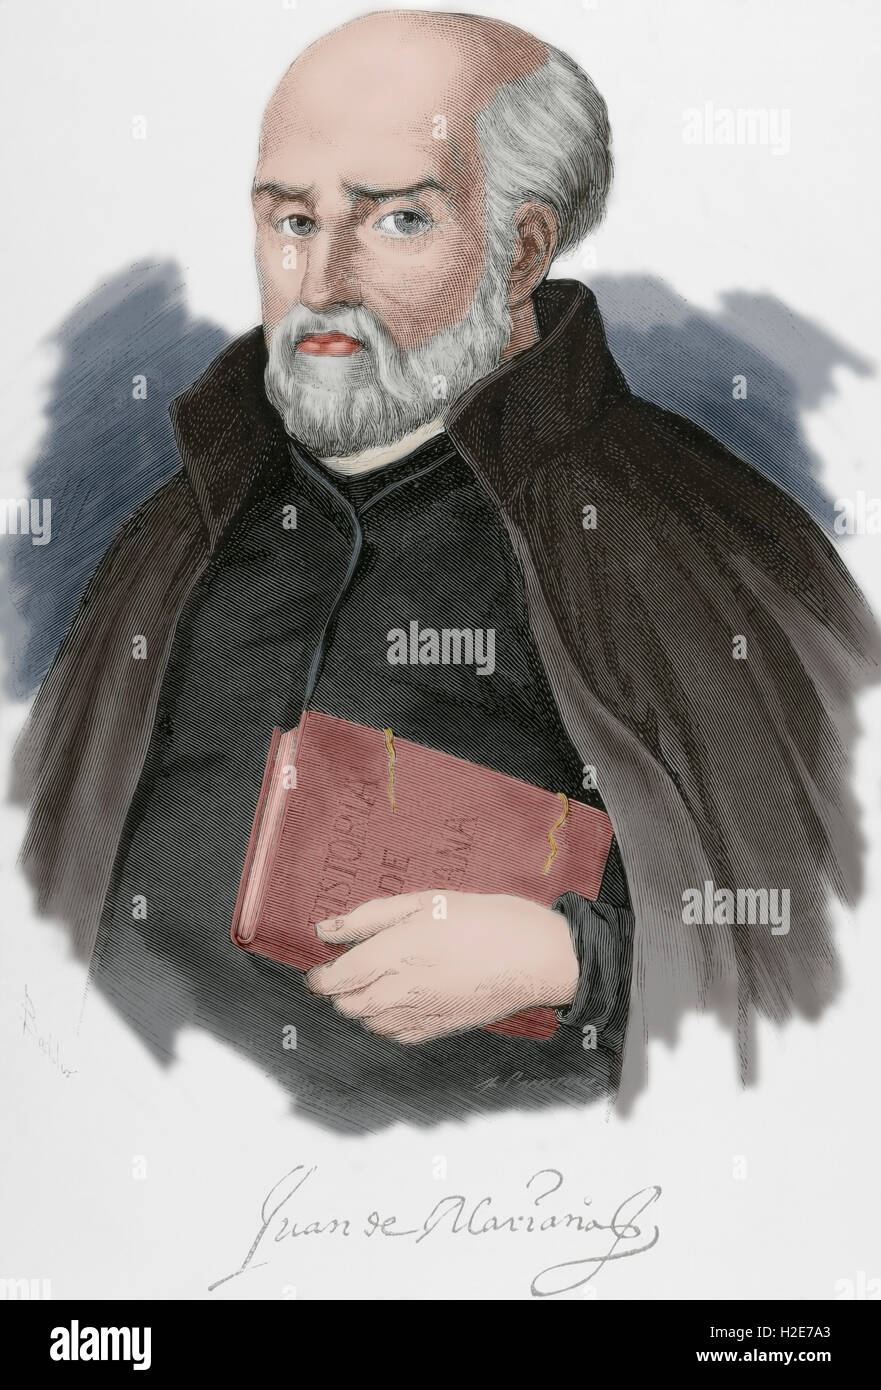 Juan de Mariana or Father Mariana (1536-1624). Spanish Jesuit priest, Scholastic, historian, and member of the Monarchomachs. - Stock Image